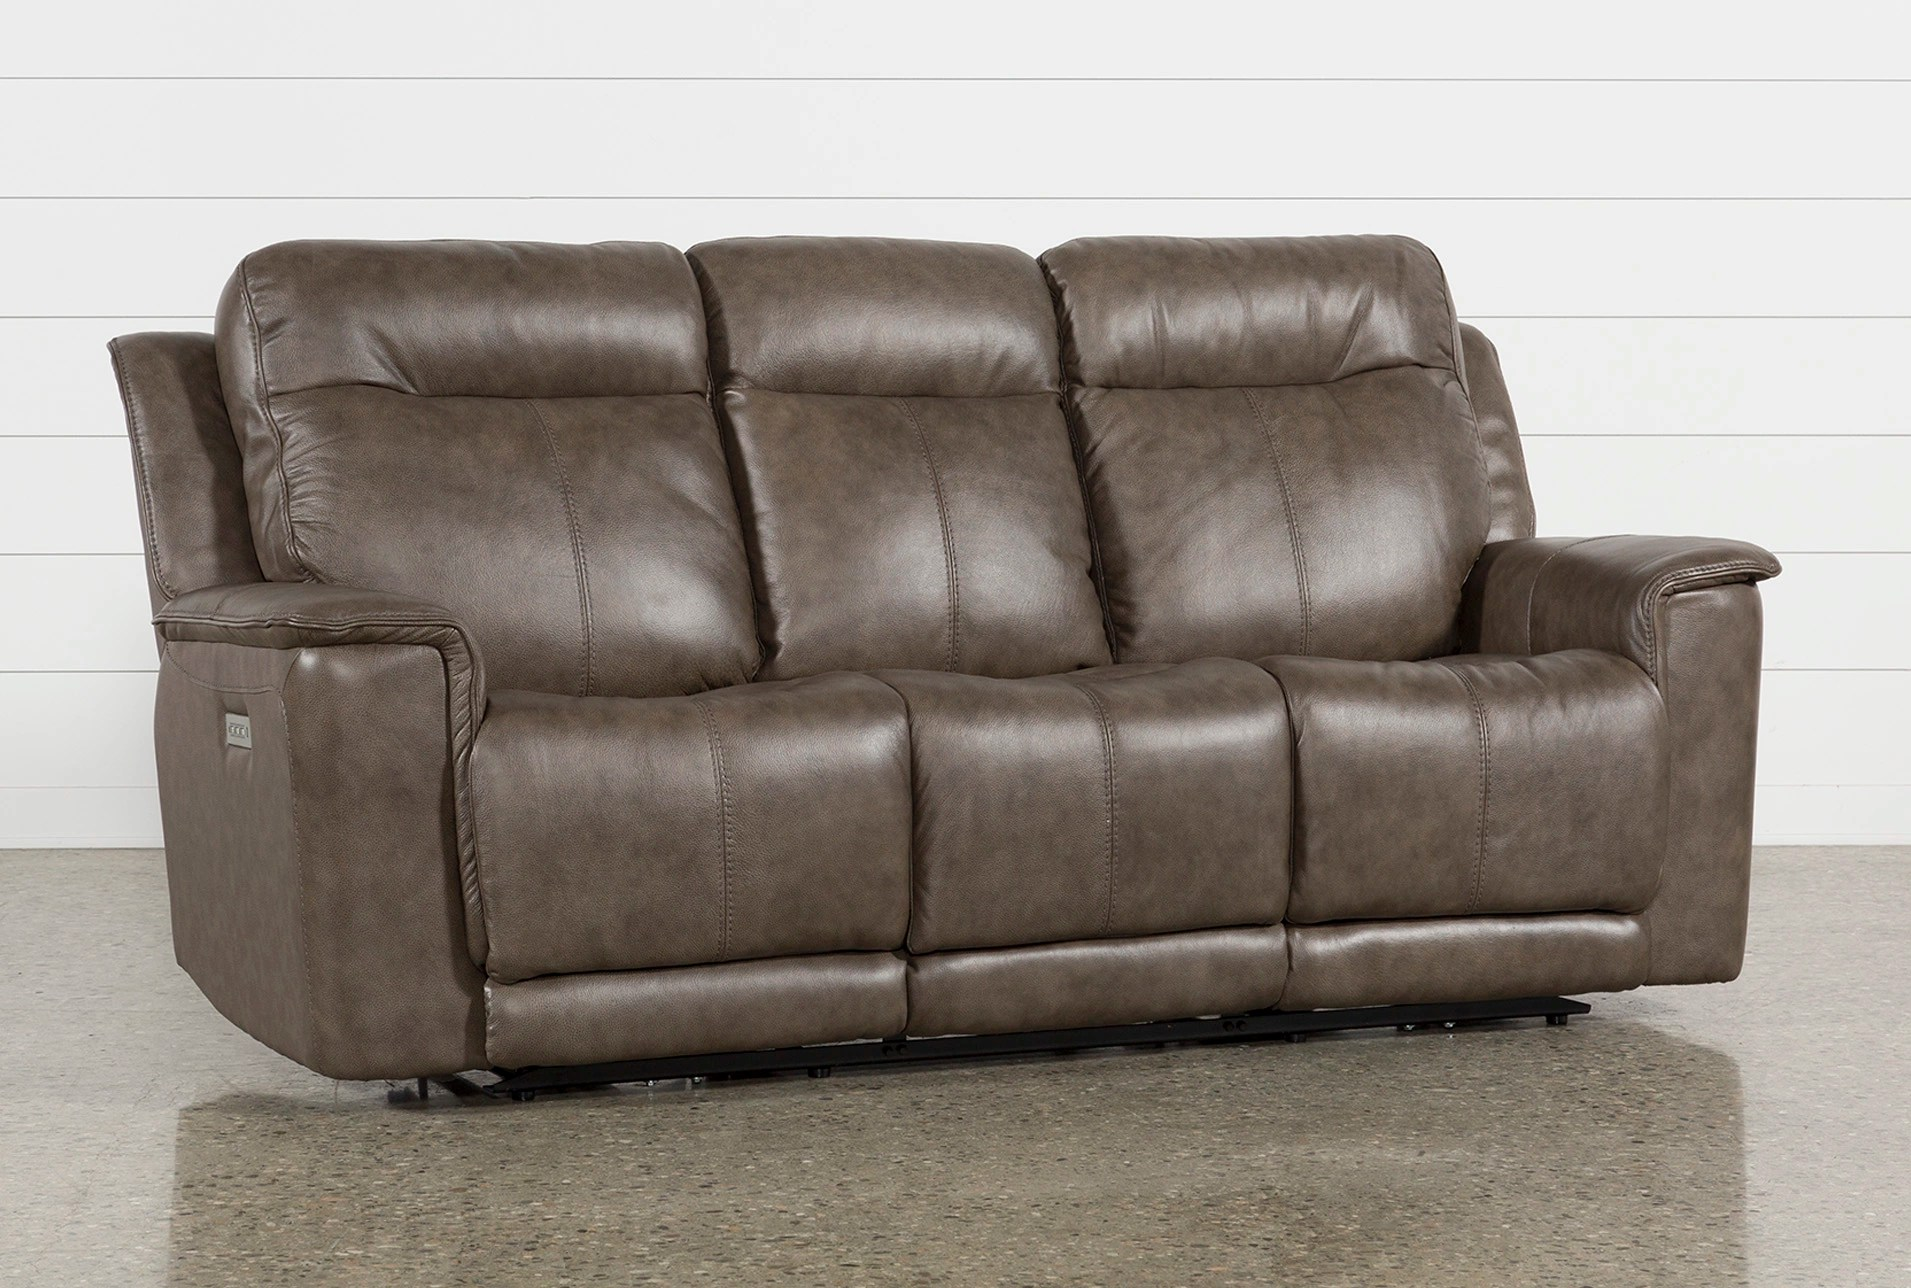 Sofa Dreams Outlet Walsh Mink Power Reclining Sofa W Power Headrest Lumbar Usb